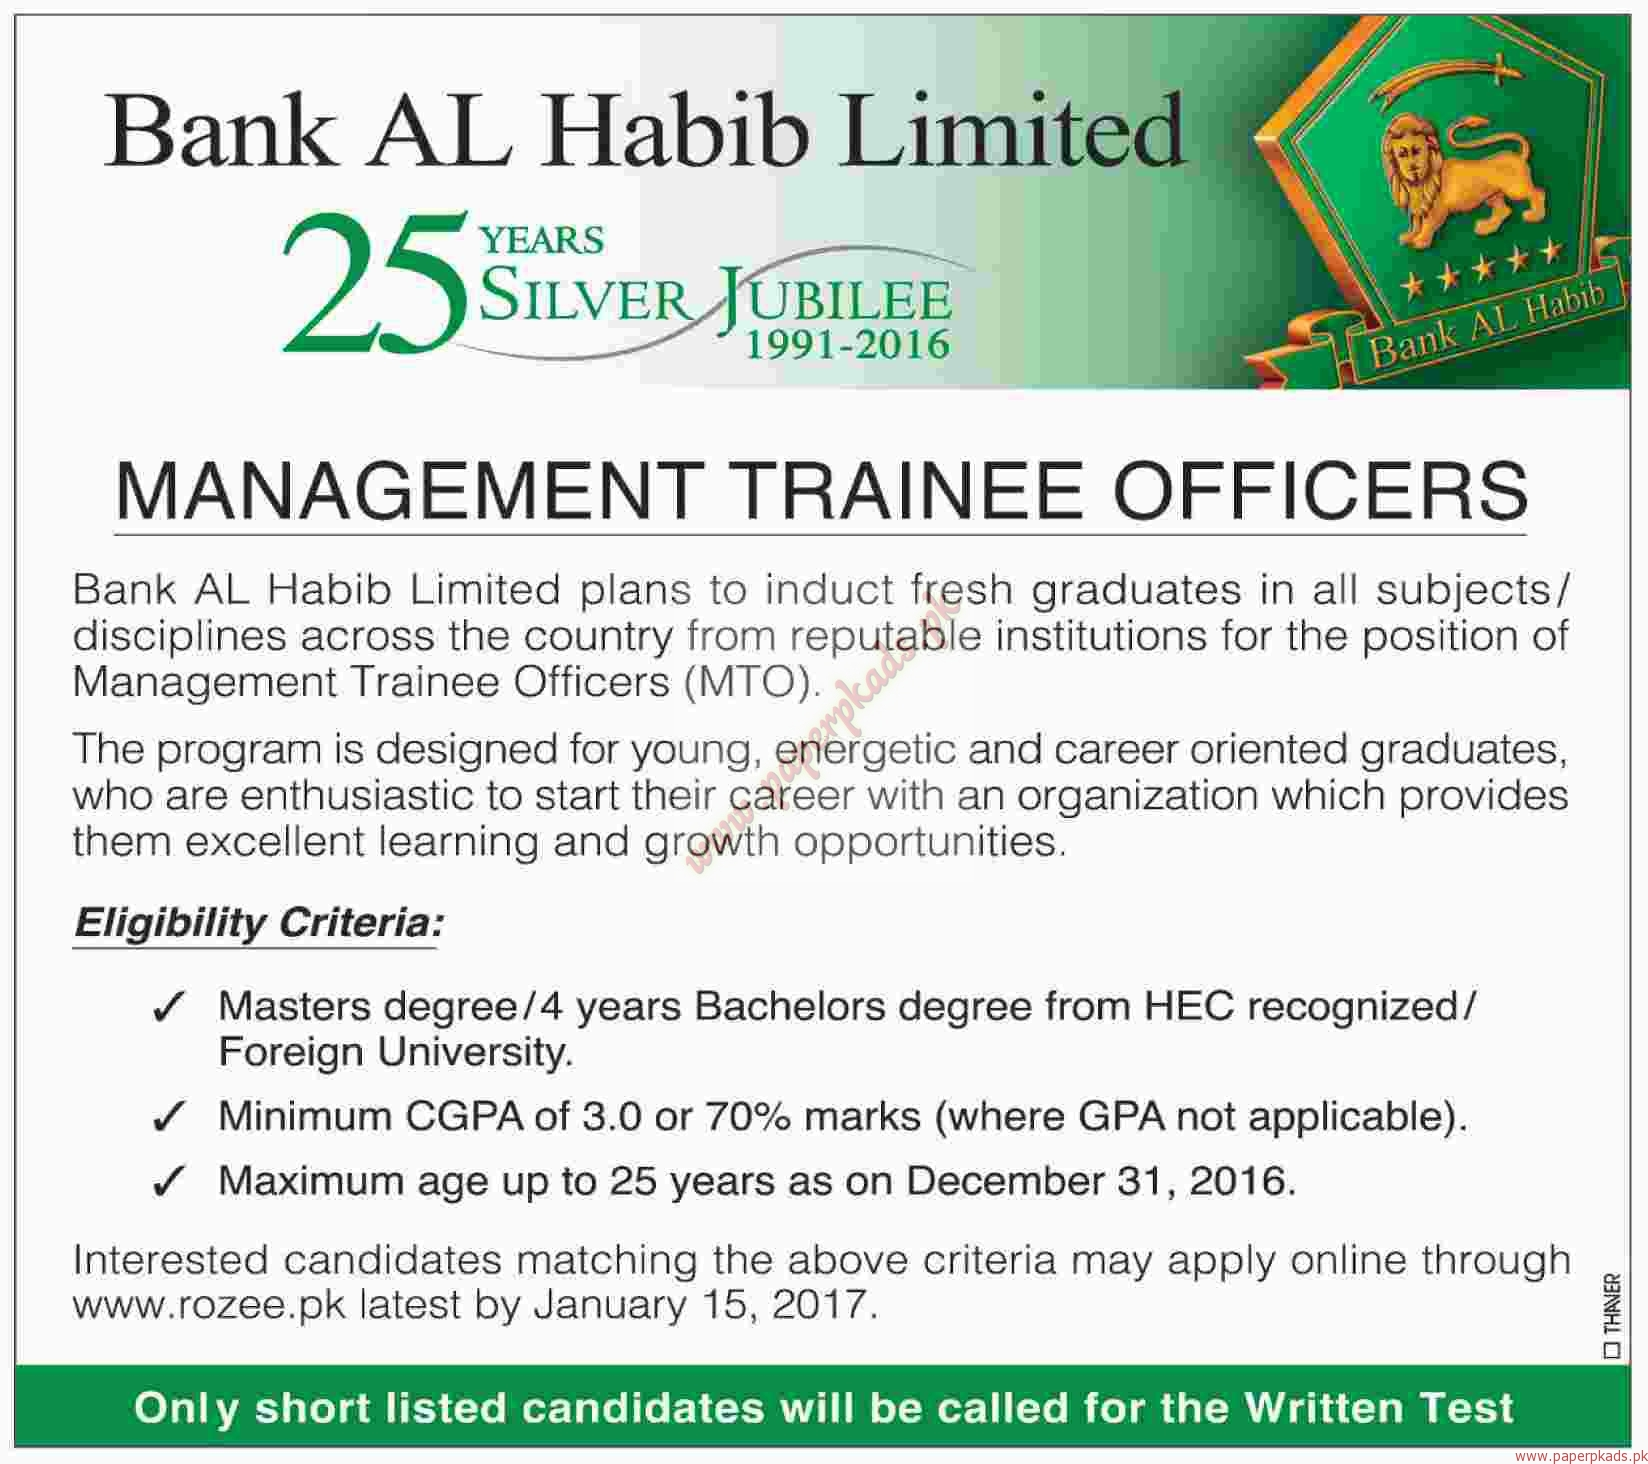 Bank Al Habib Limited Jobs - Dawn Jobs ads 01 January 2017